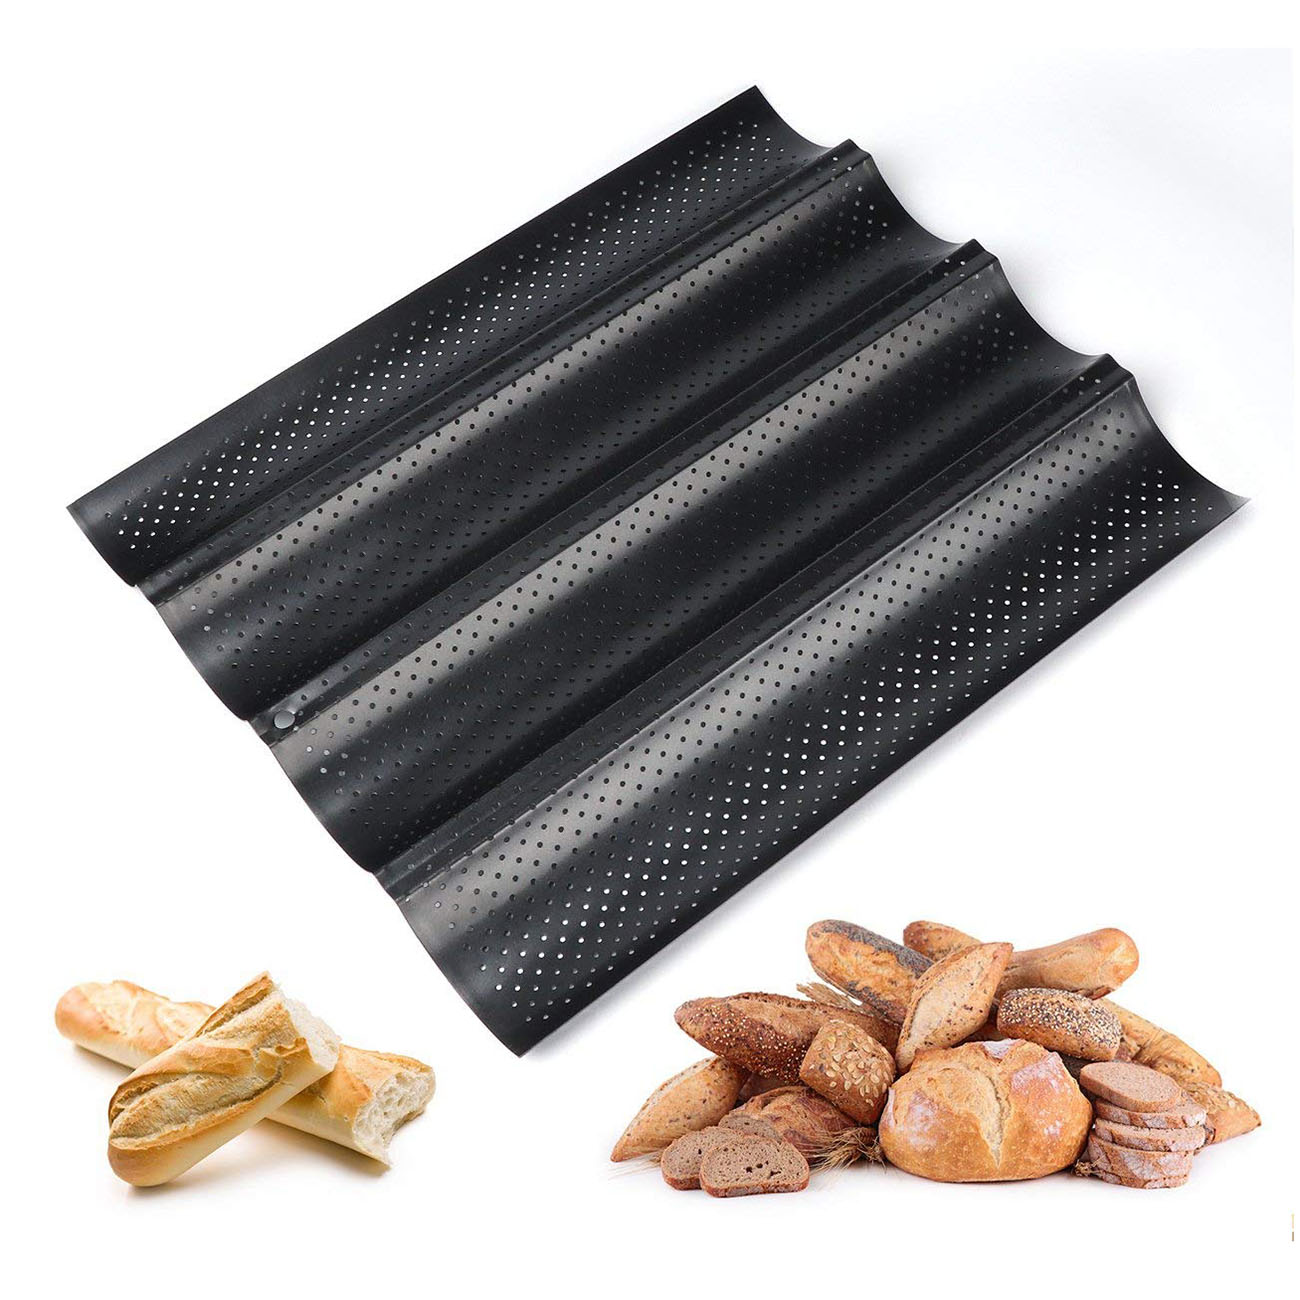 Baguette sheet baguette baking tray baguette mold with non-stick coating for baking carbon steel